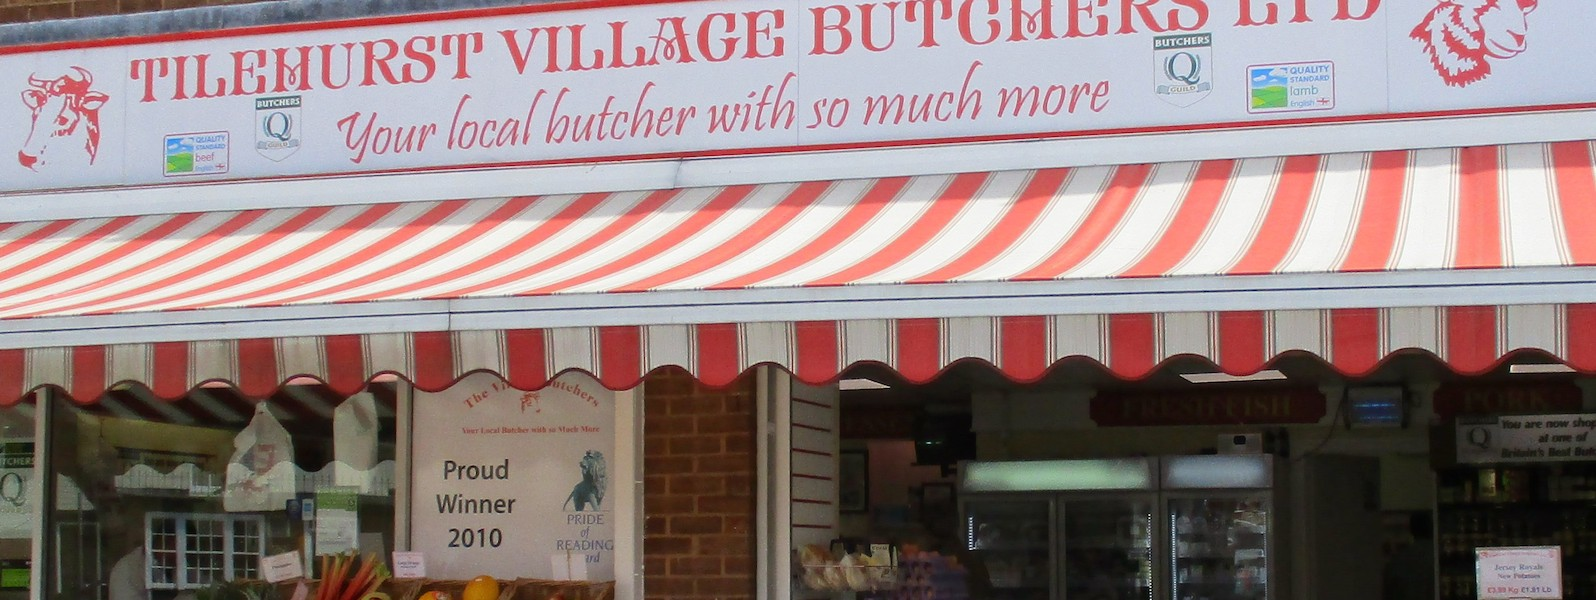 Tilehurst Village Butchers Ltd